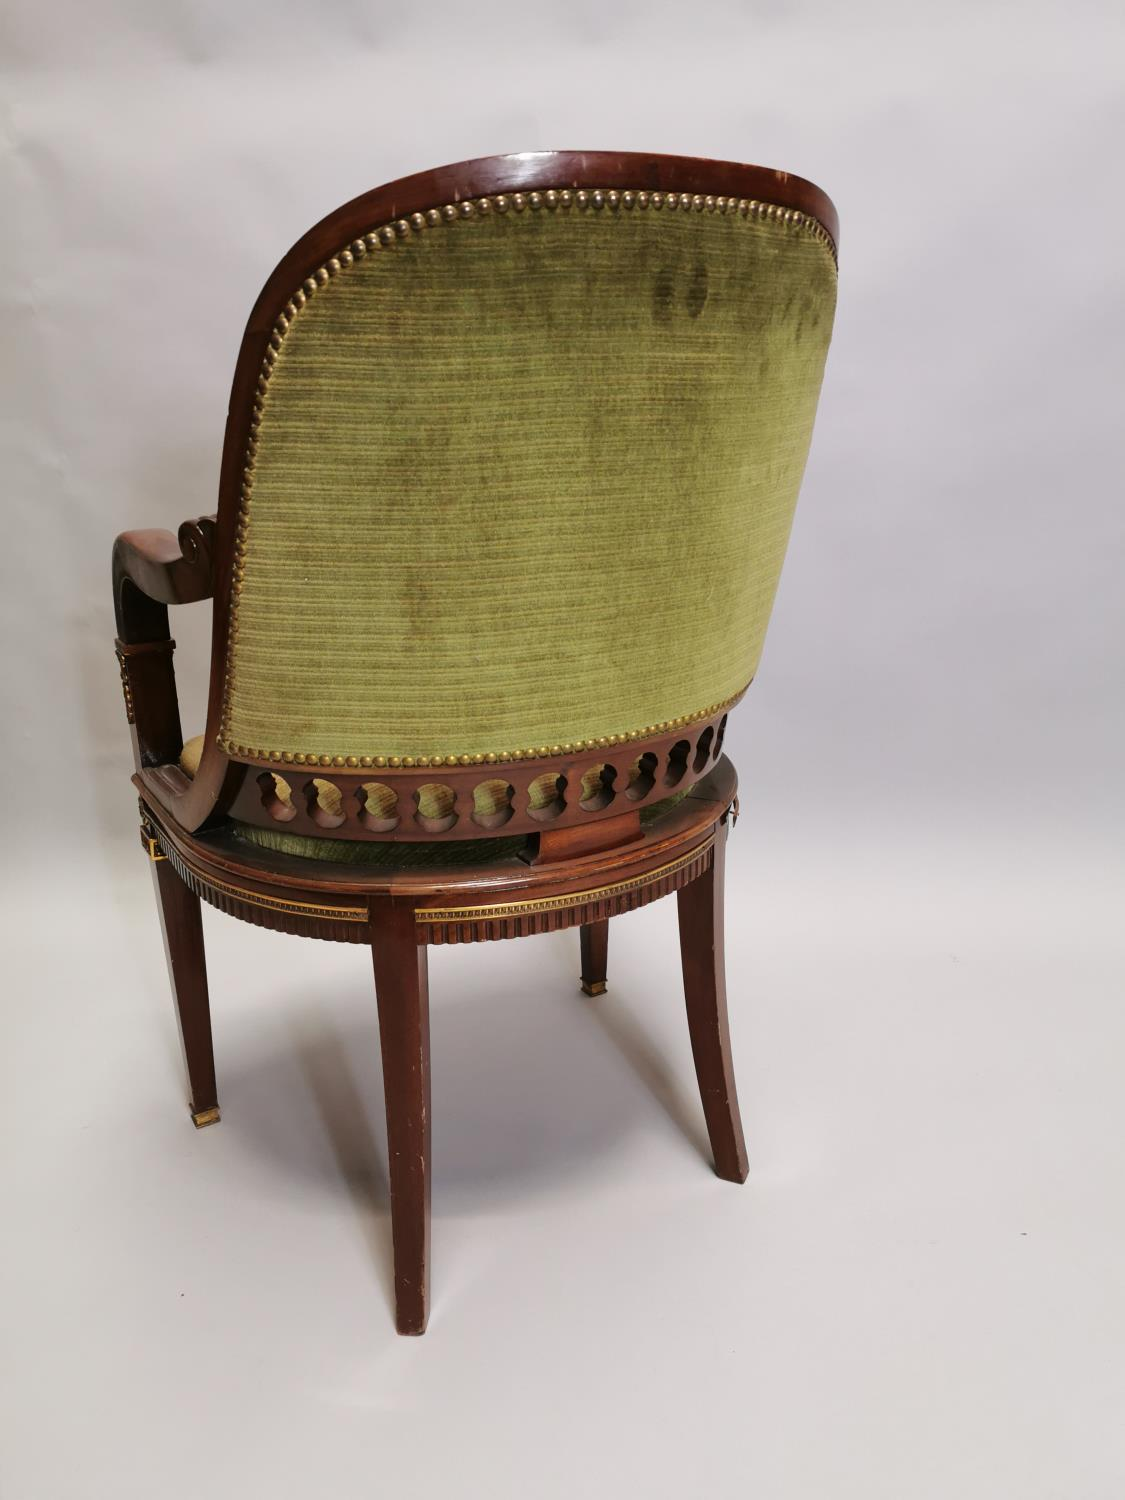 Upholstered mahogany desk chair - Image 8 of 8